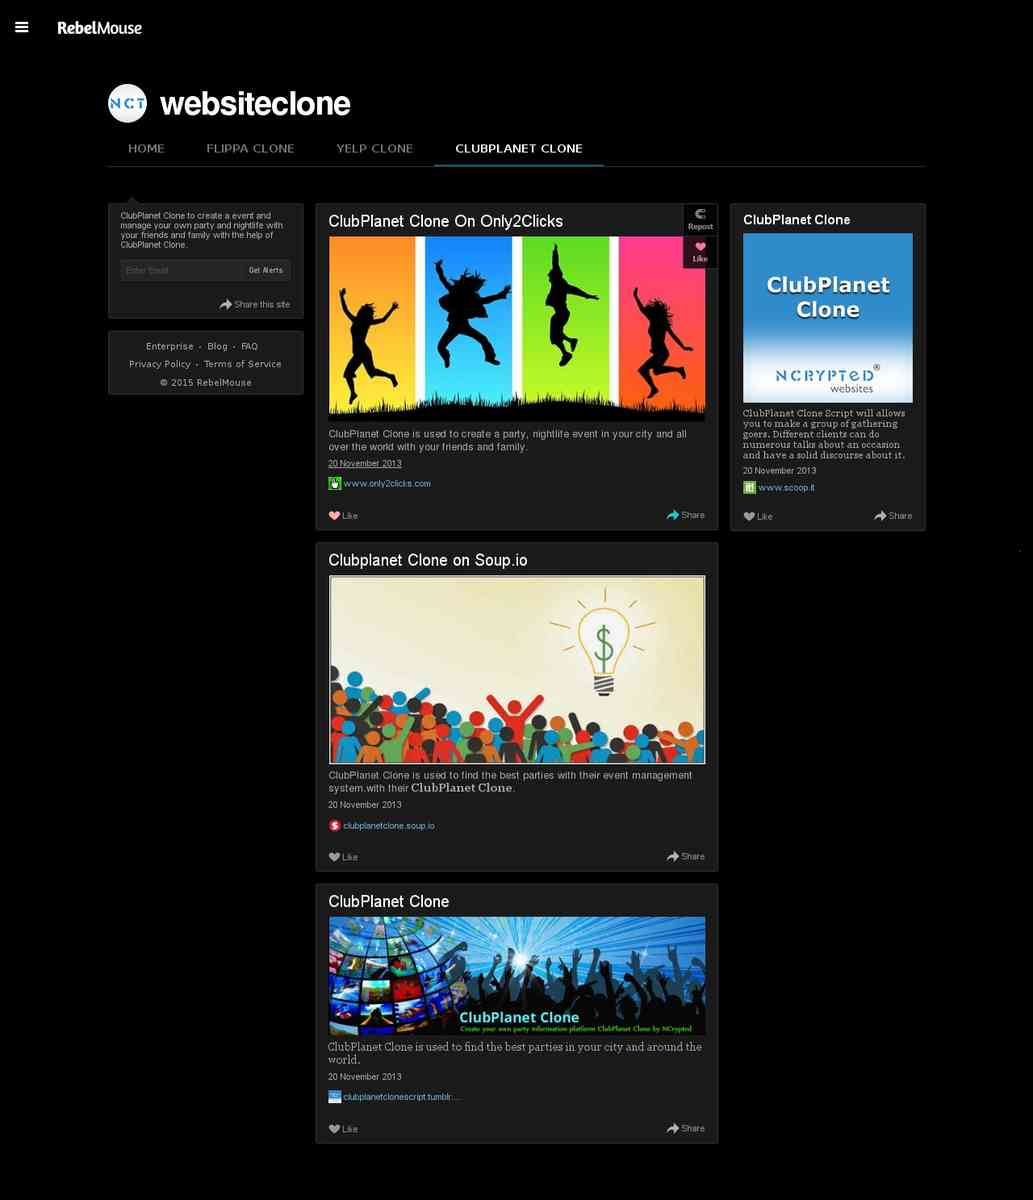 rebelmouse.com/websiteclones/ClubPlanet_Clone